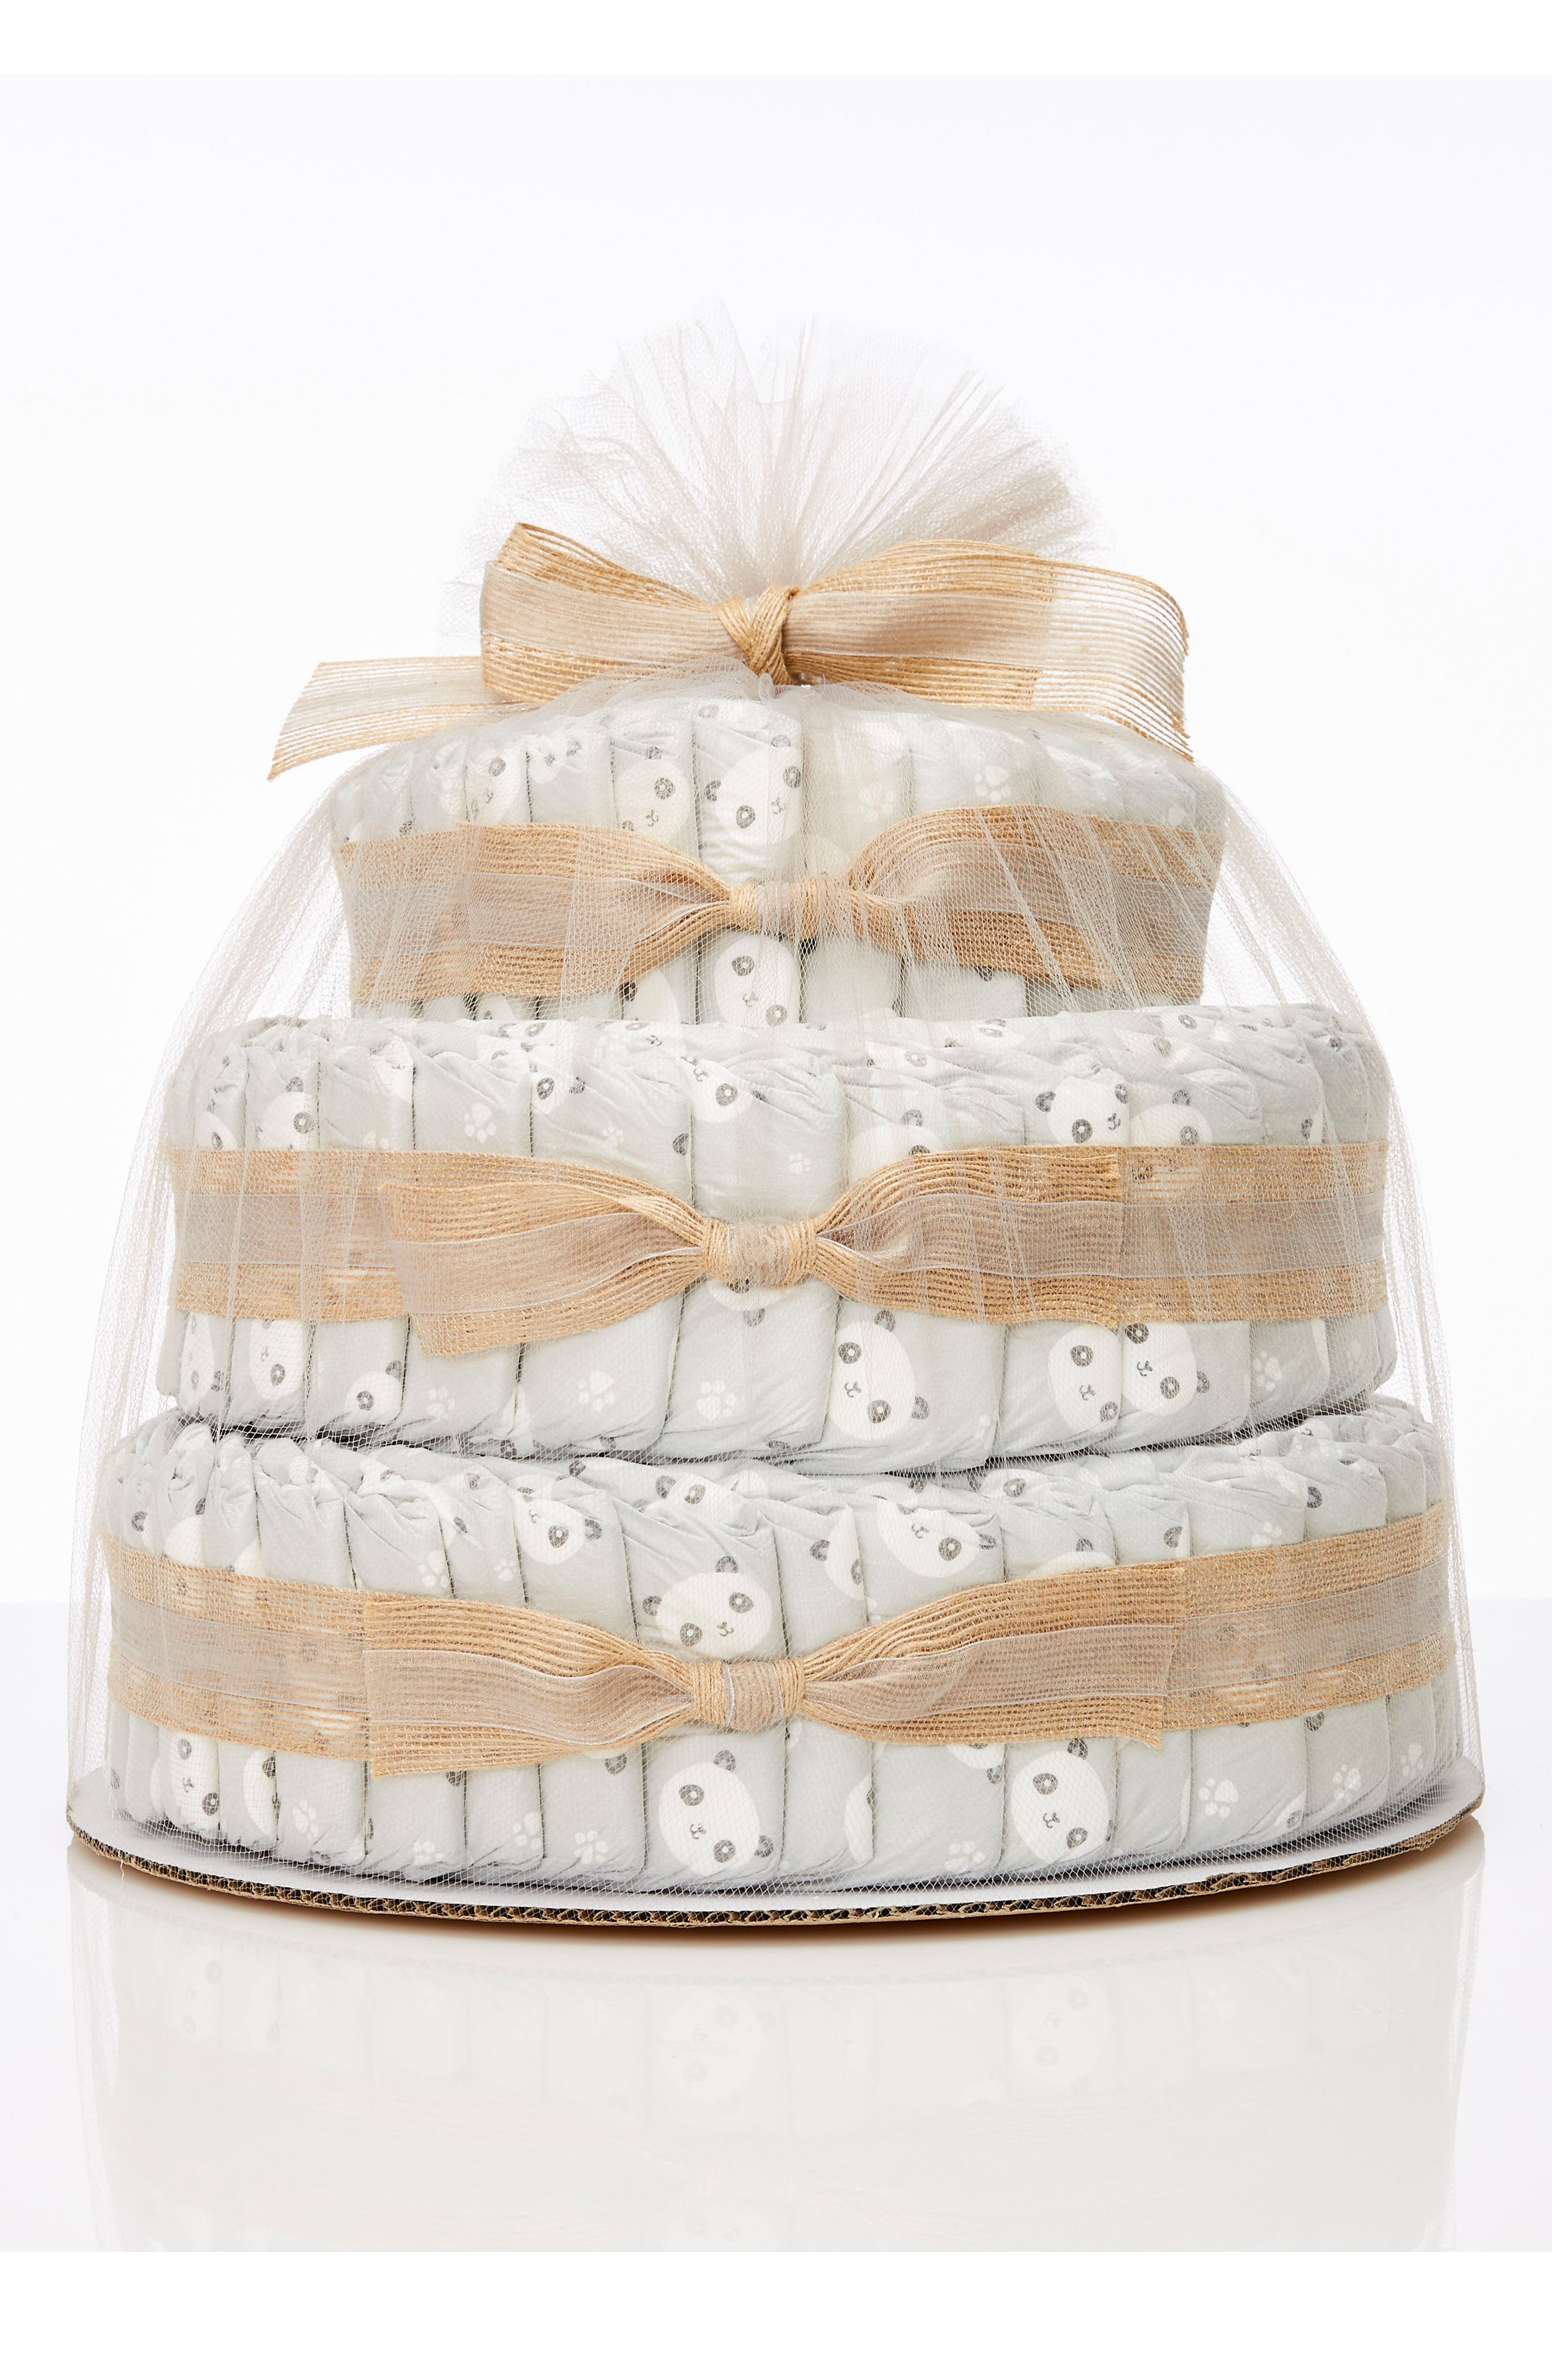 THE HONEST COMPANY Large Diaper Cake & Full-Size Essentials Set, Main, color, PANDAS